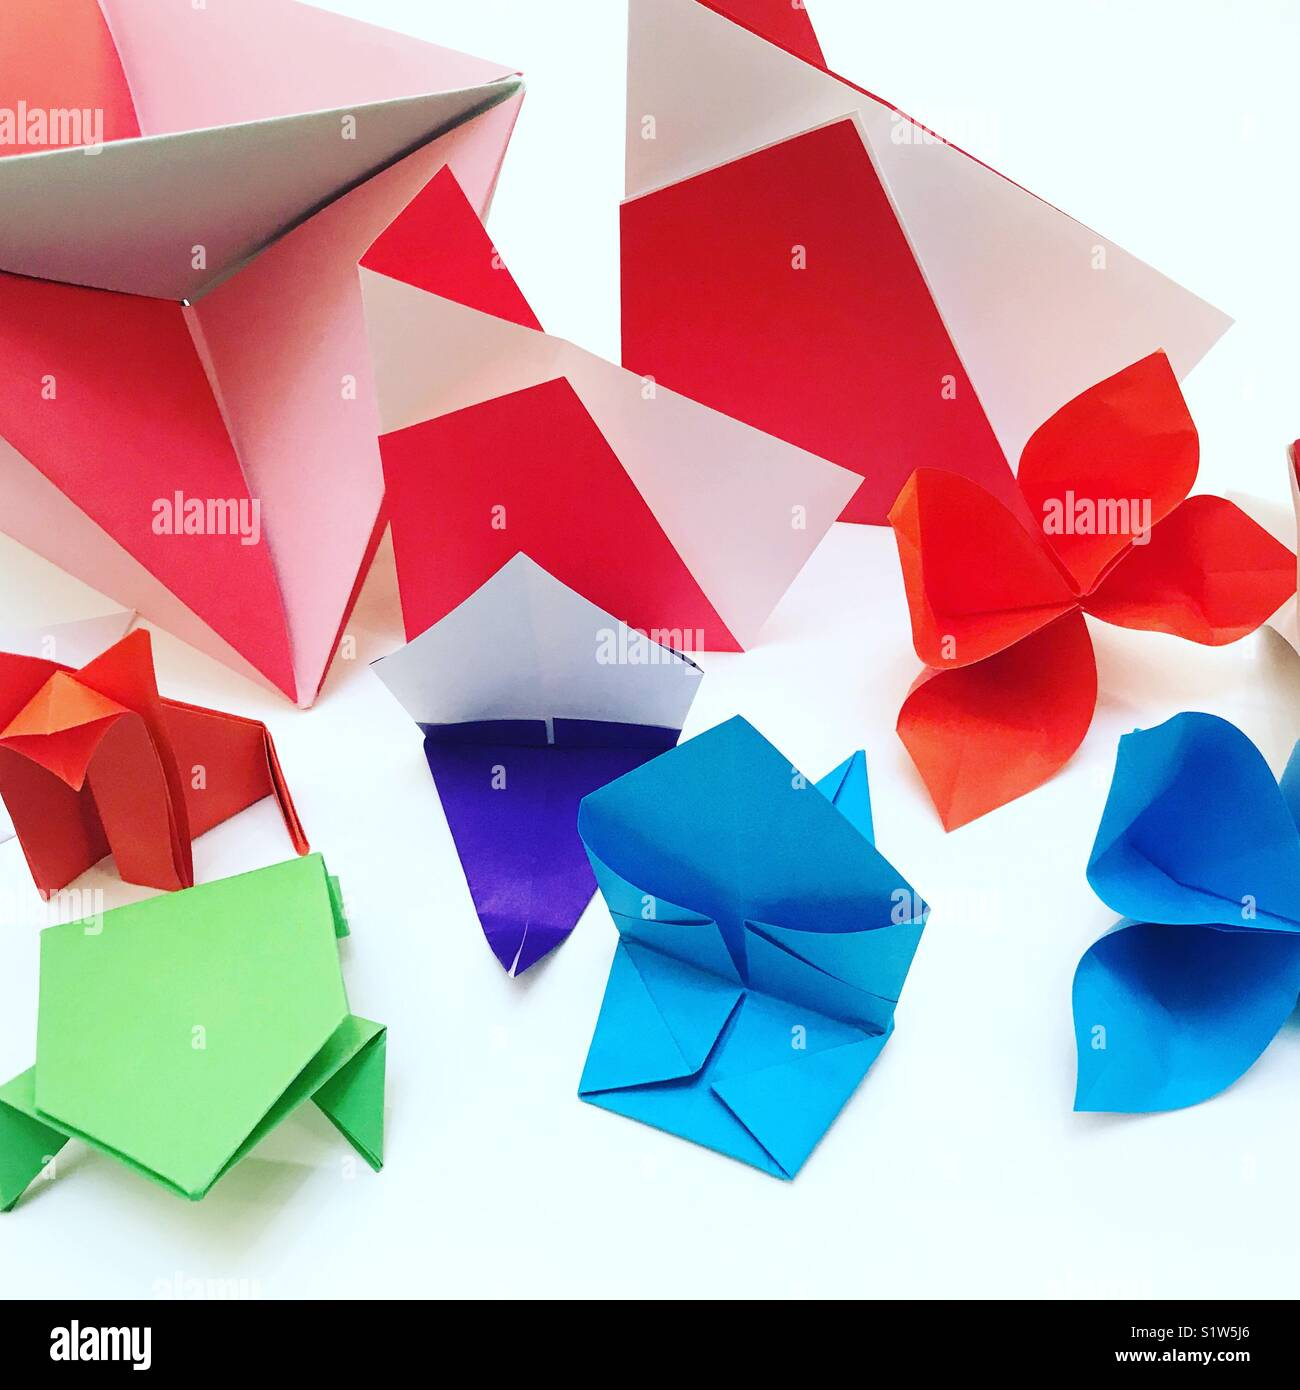 Origami creations - Stock Image